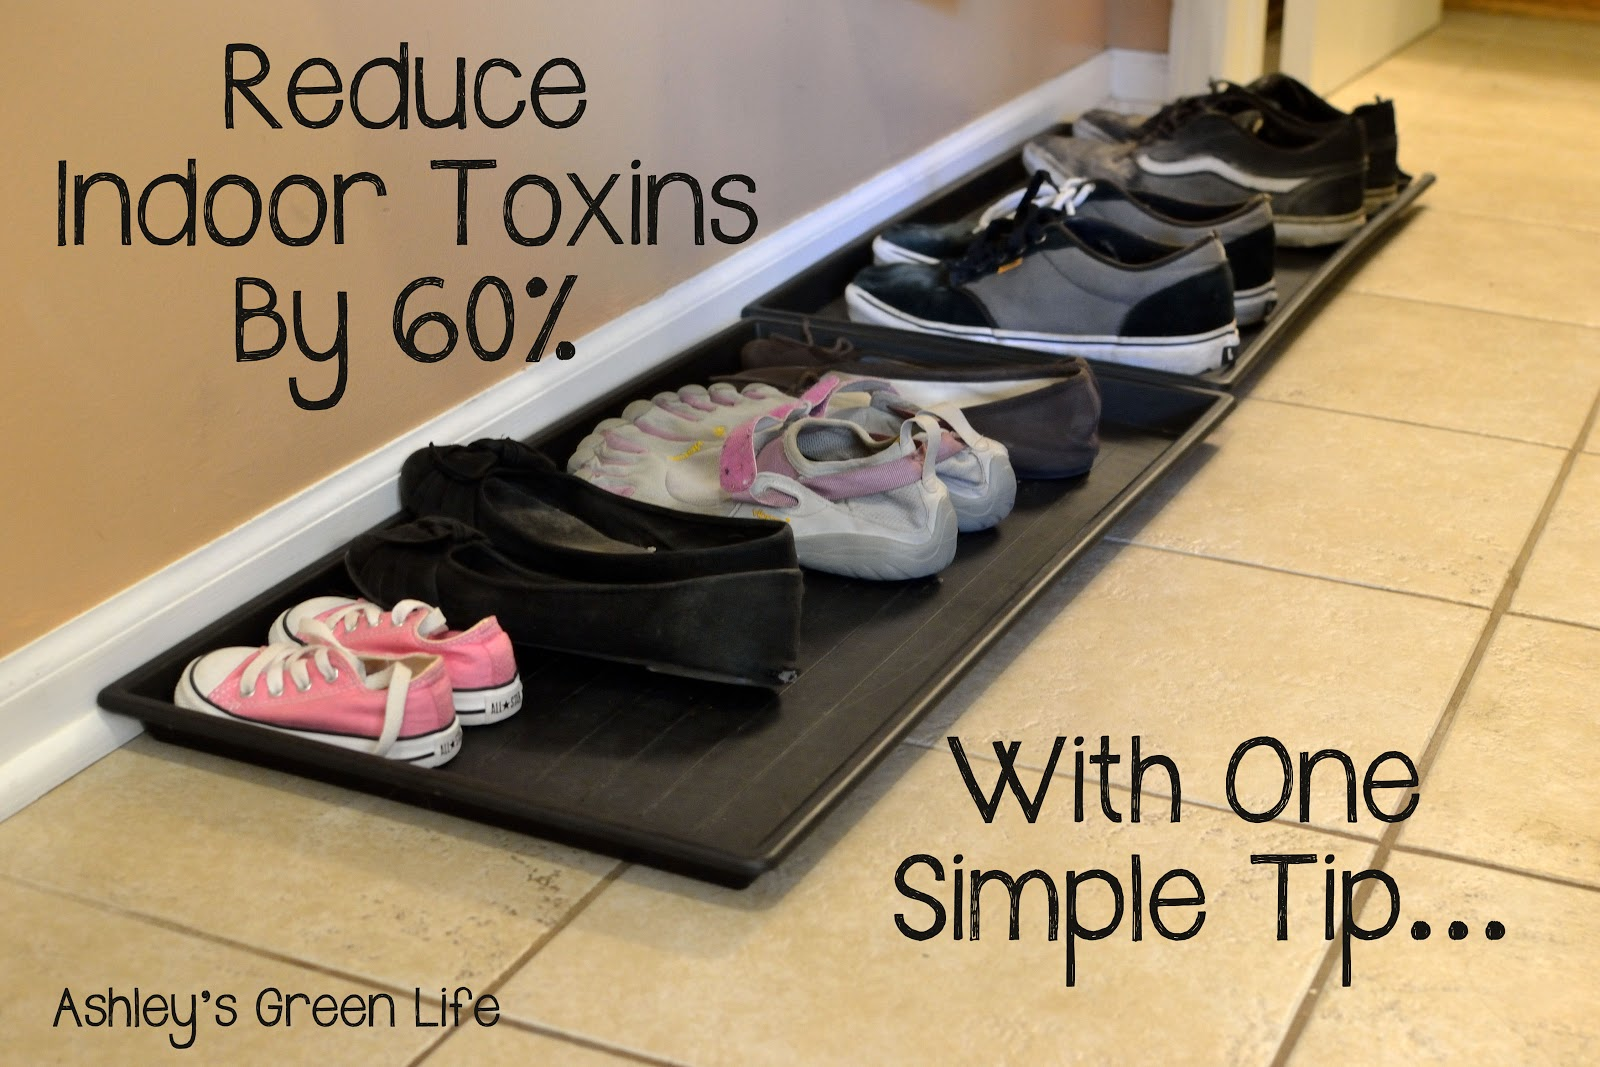 Reduce Indoor Toxins By 60% With One Tip.